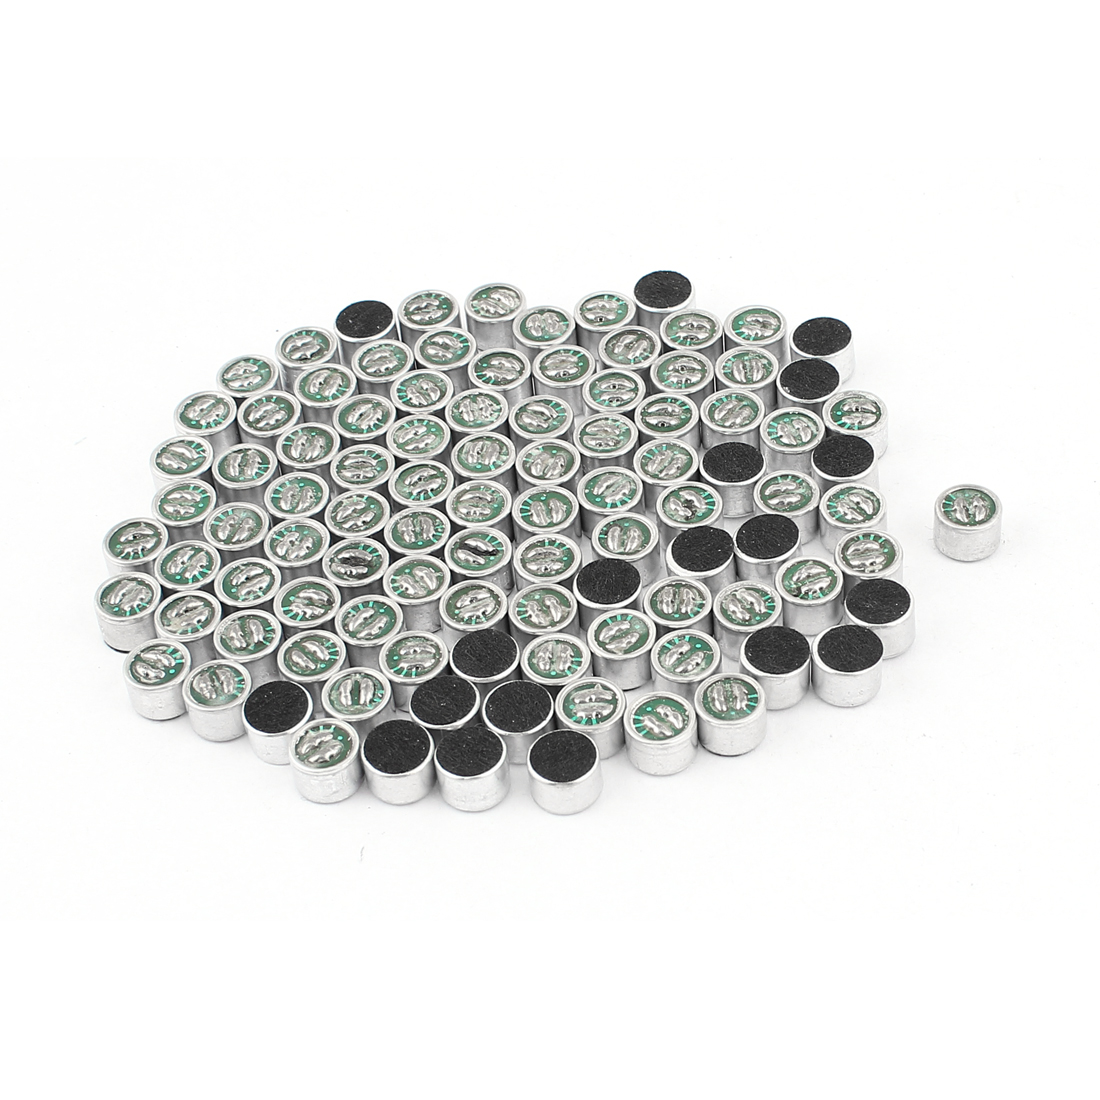 100pcs 9mm x 7mm SMD MIC Electret Microphone Condenser Pickup